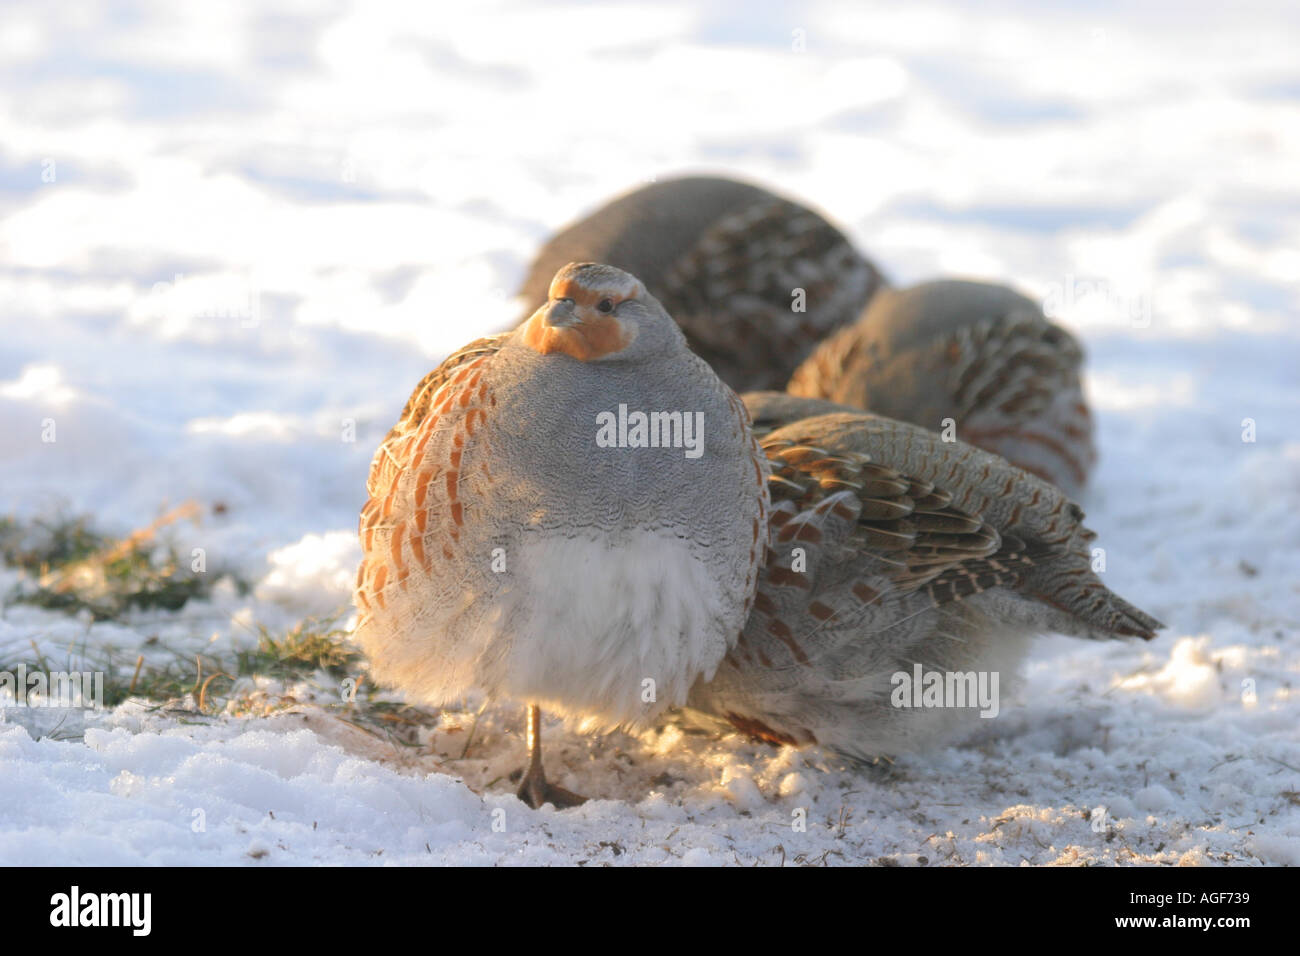 Covey Of Quail Stock Photos & Covey Of Quail Stock Images